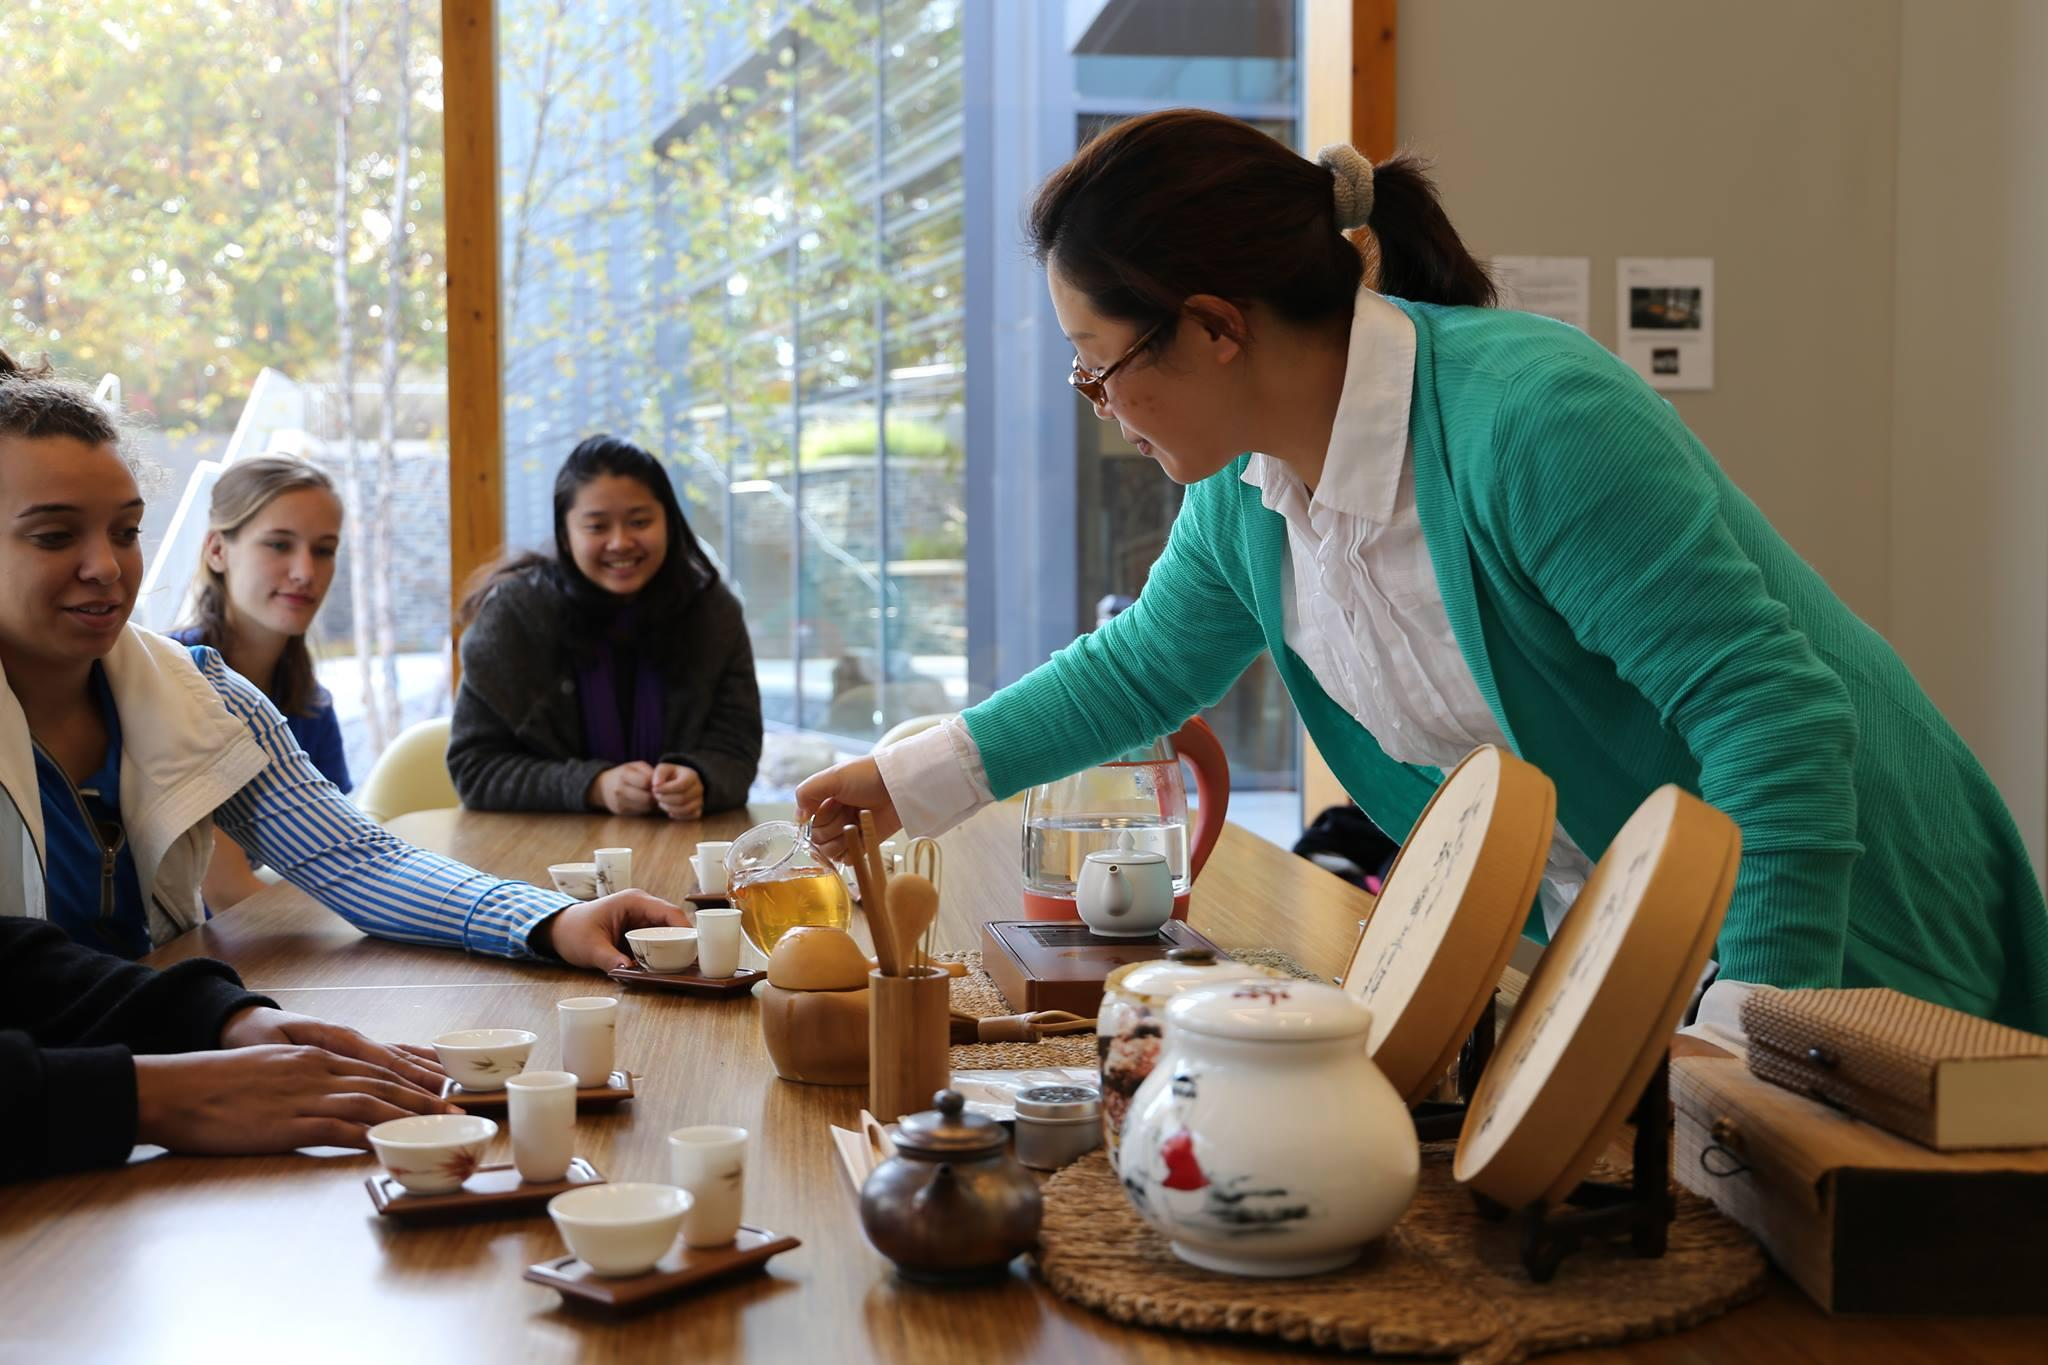 In partnership with Duke CommuniTEA, this wellness experience allows you to gain a deeper understanding of wellness through tea culture.   You will have the opportunity to interact through the medium of tea appreciation in a space that promotes relaxation and self-care.  This group meets every Sunday & Thursday from 5:00pm - 5:50pm in Oasis West, Room 128 in the Student Wellness Center.